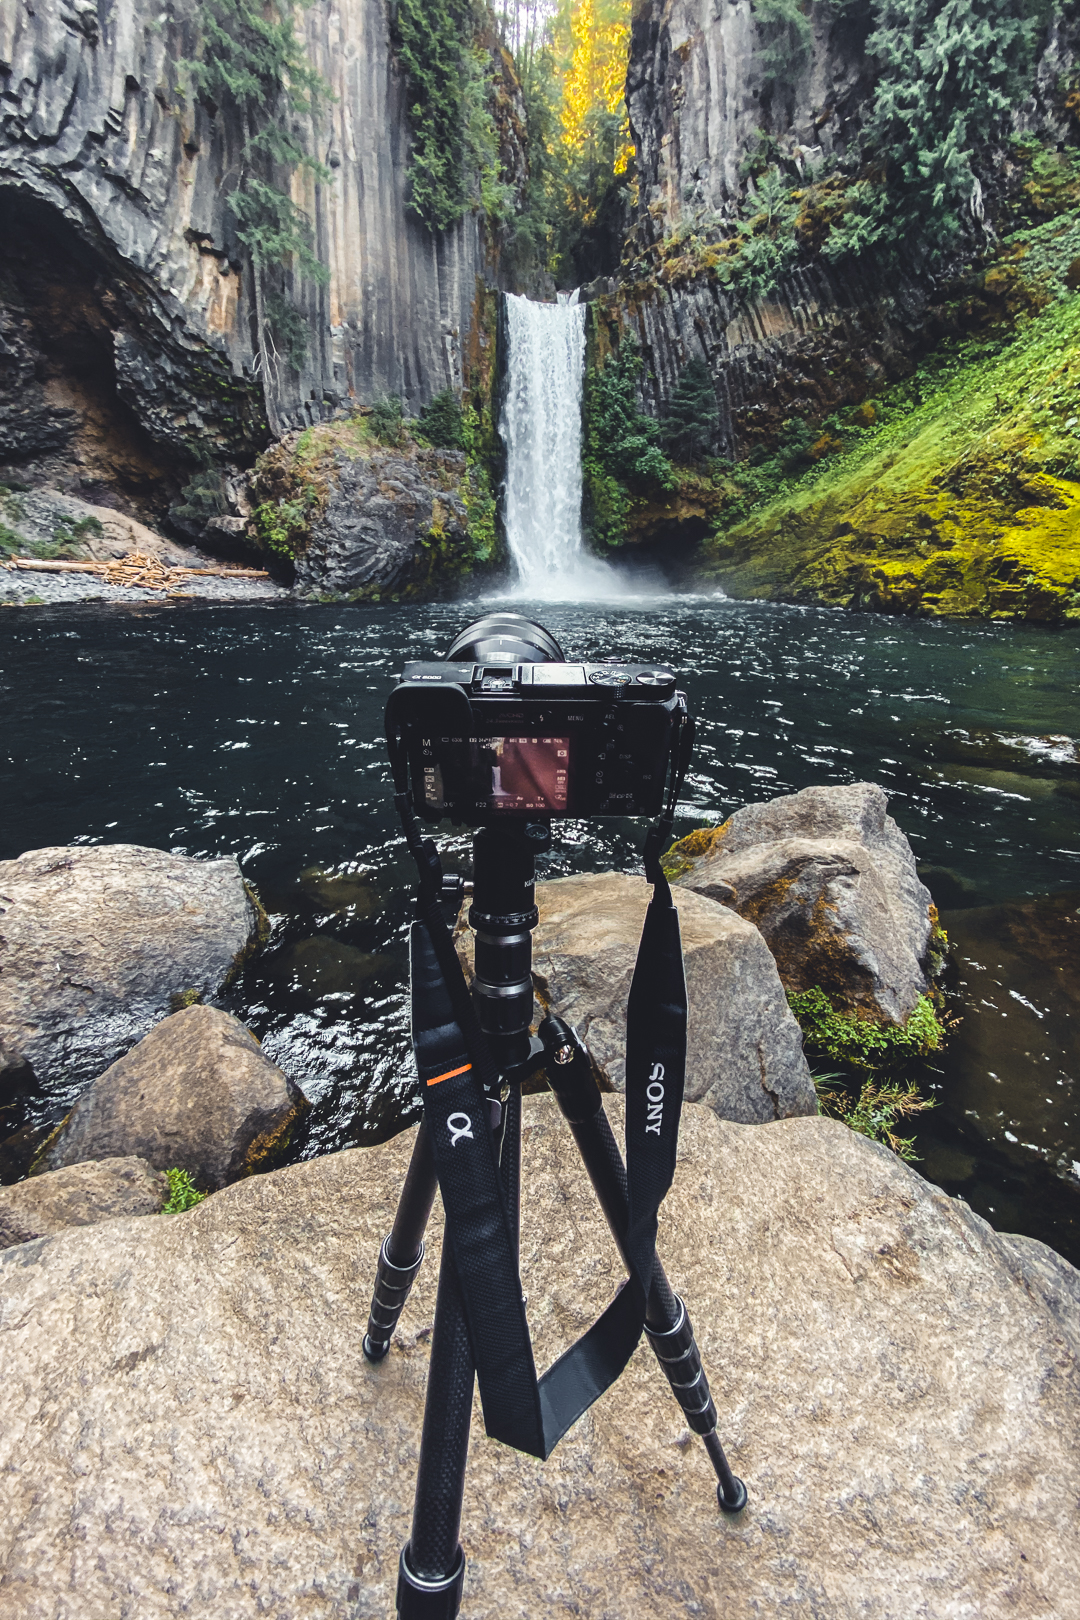 Photography Setup for Toketee Falls